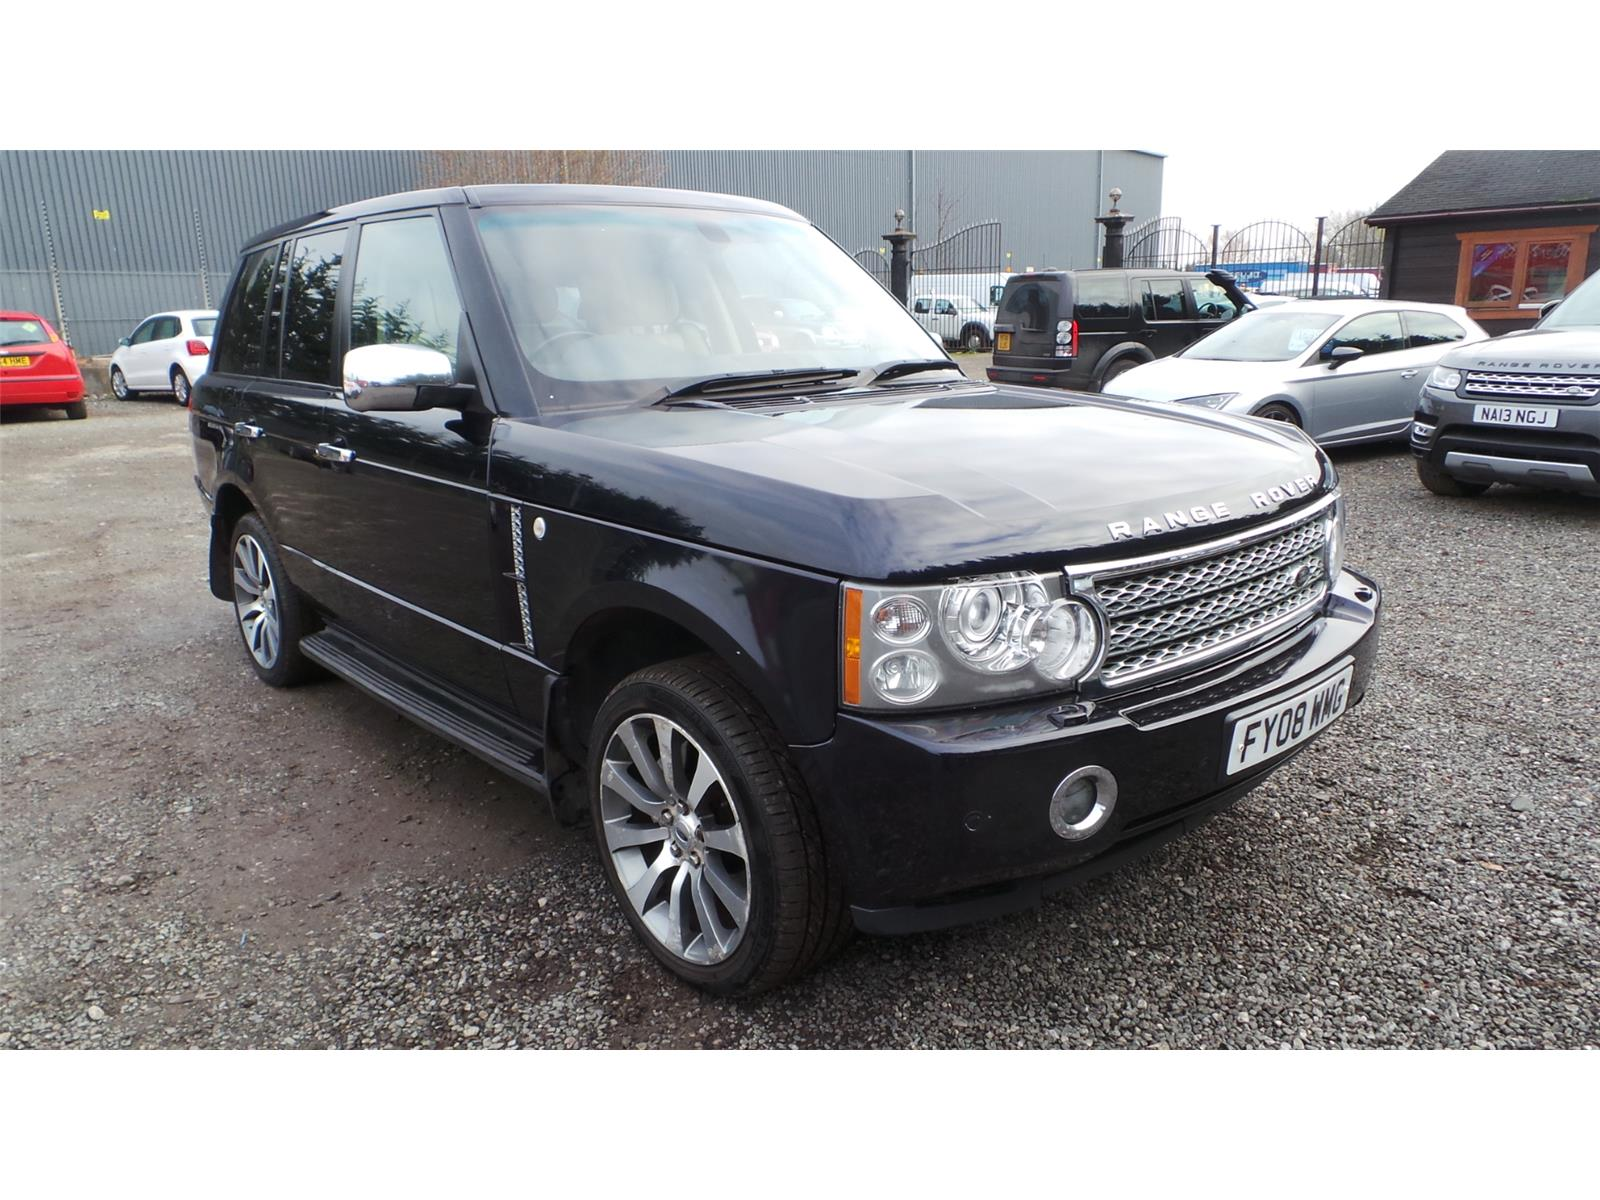 2008 Land Rover Range Rover Vogue SWB TDV8 3628 Diesel Automatic 6 Speed 5 Door 4x4